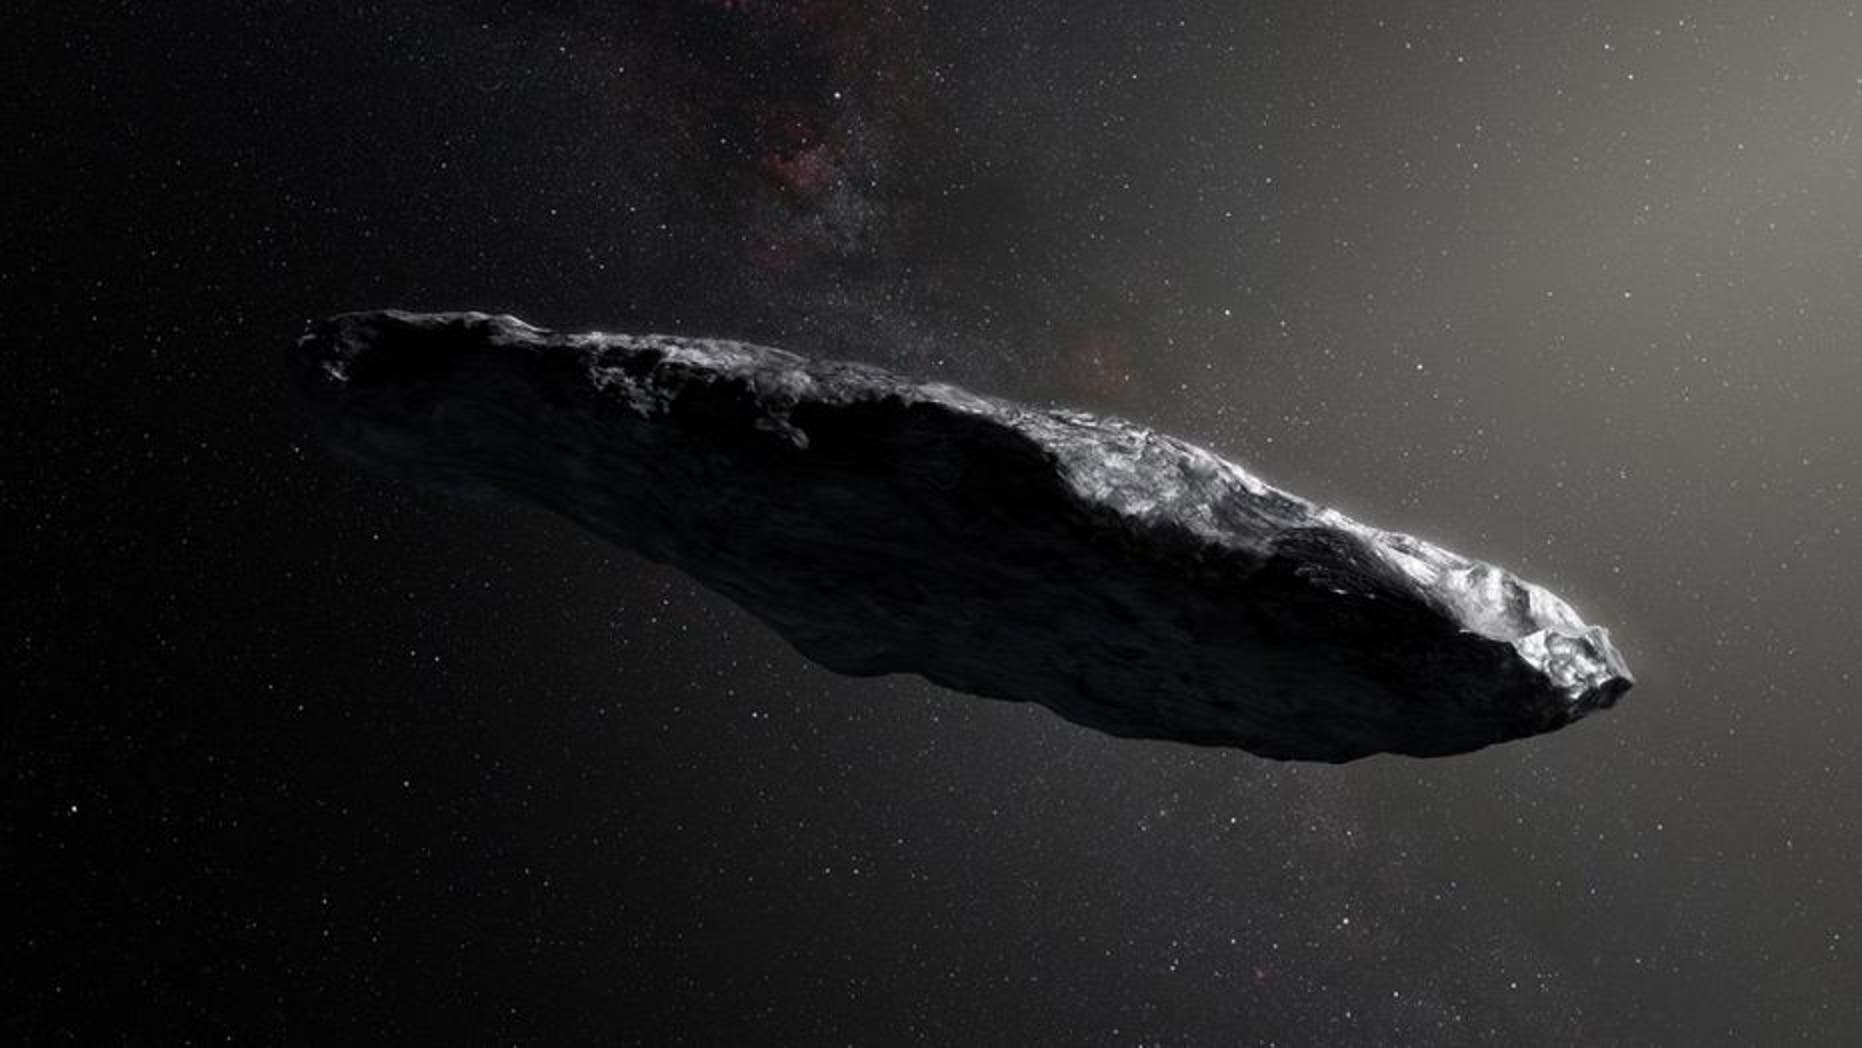 Mysterious cigar-shaped interstellar object may be alien spacecraft: Harvard researchers